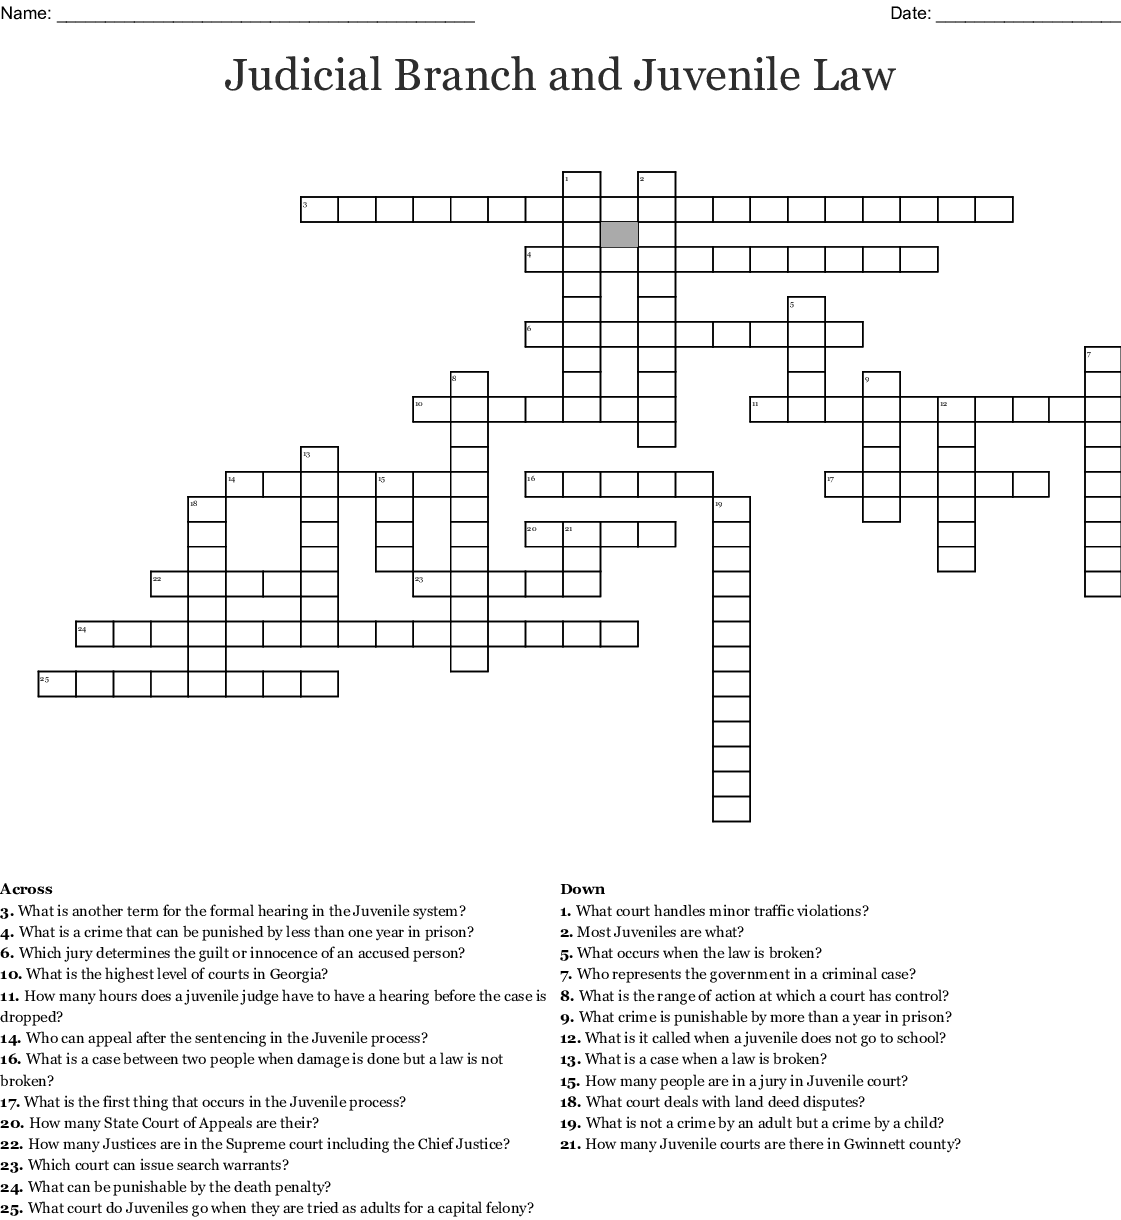 judicial branch Crossword - WordMint